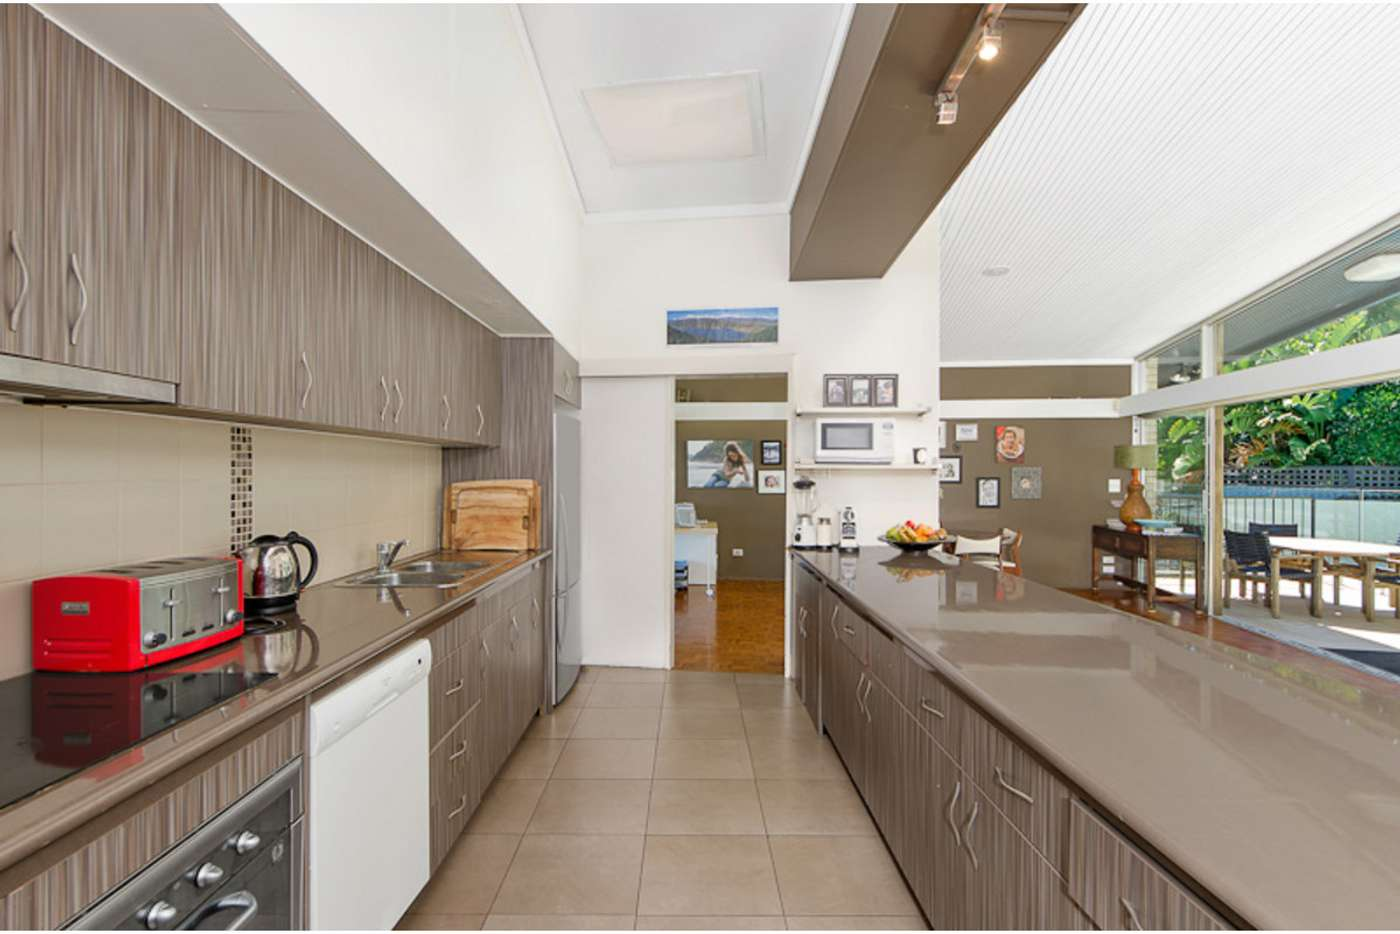 Fifth view of Homely house listing, 22E Vaucluse Road, Vaucluse NSW 2030